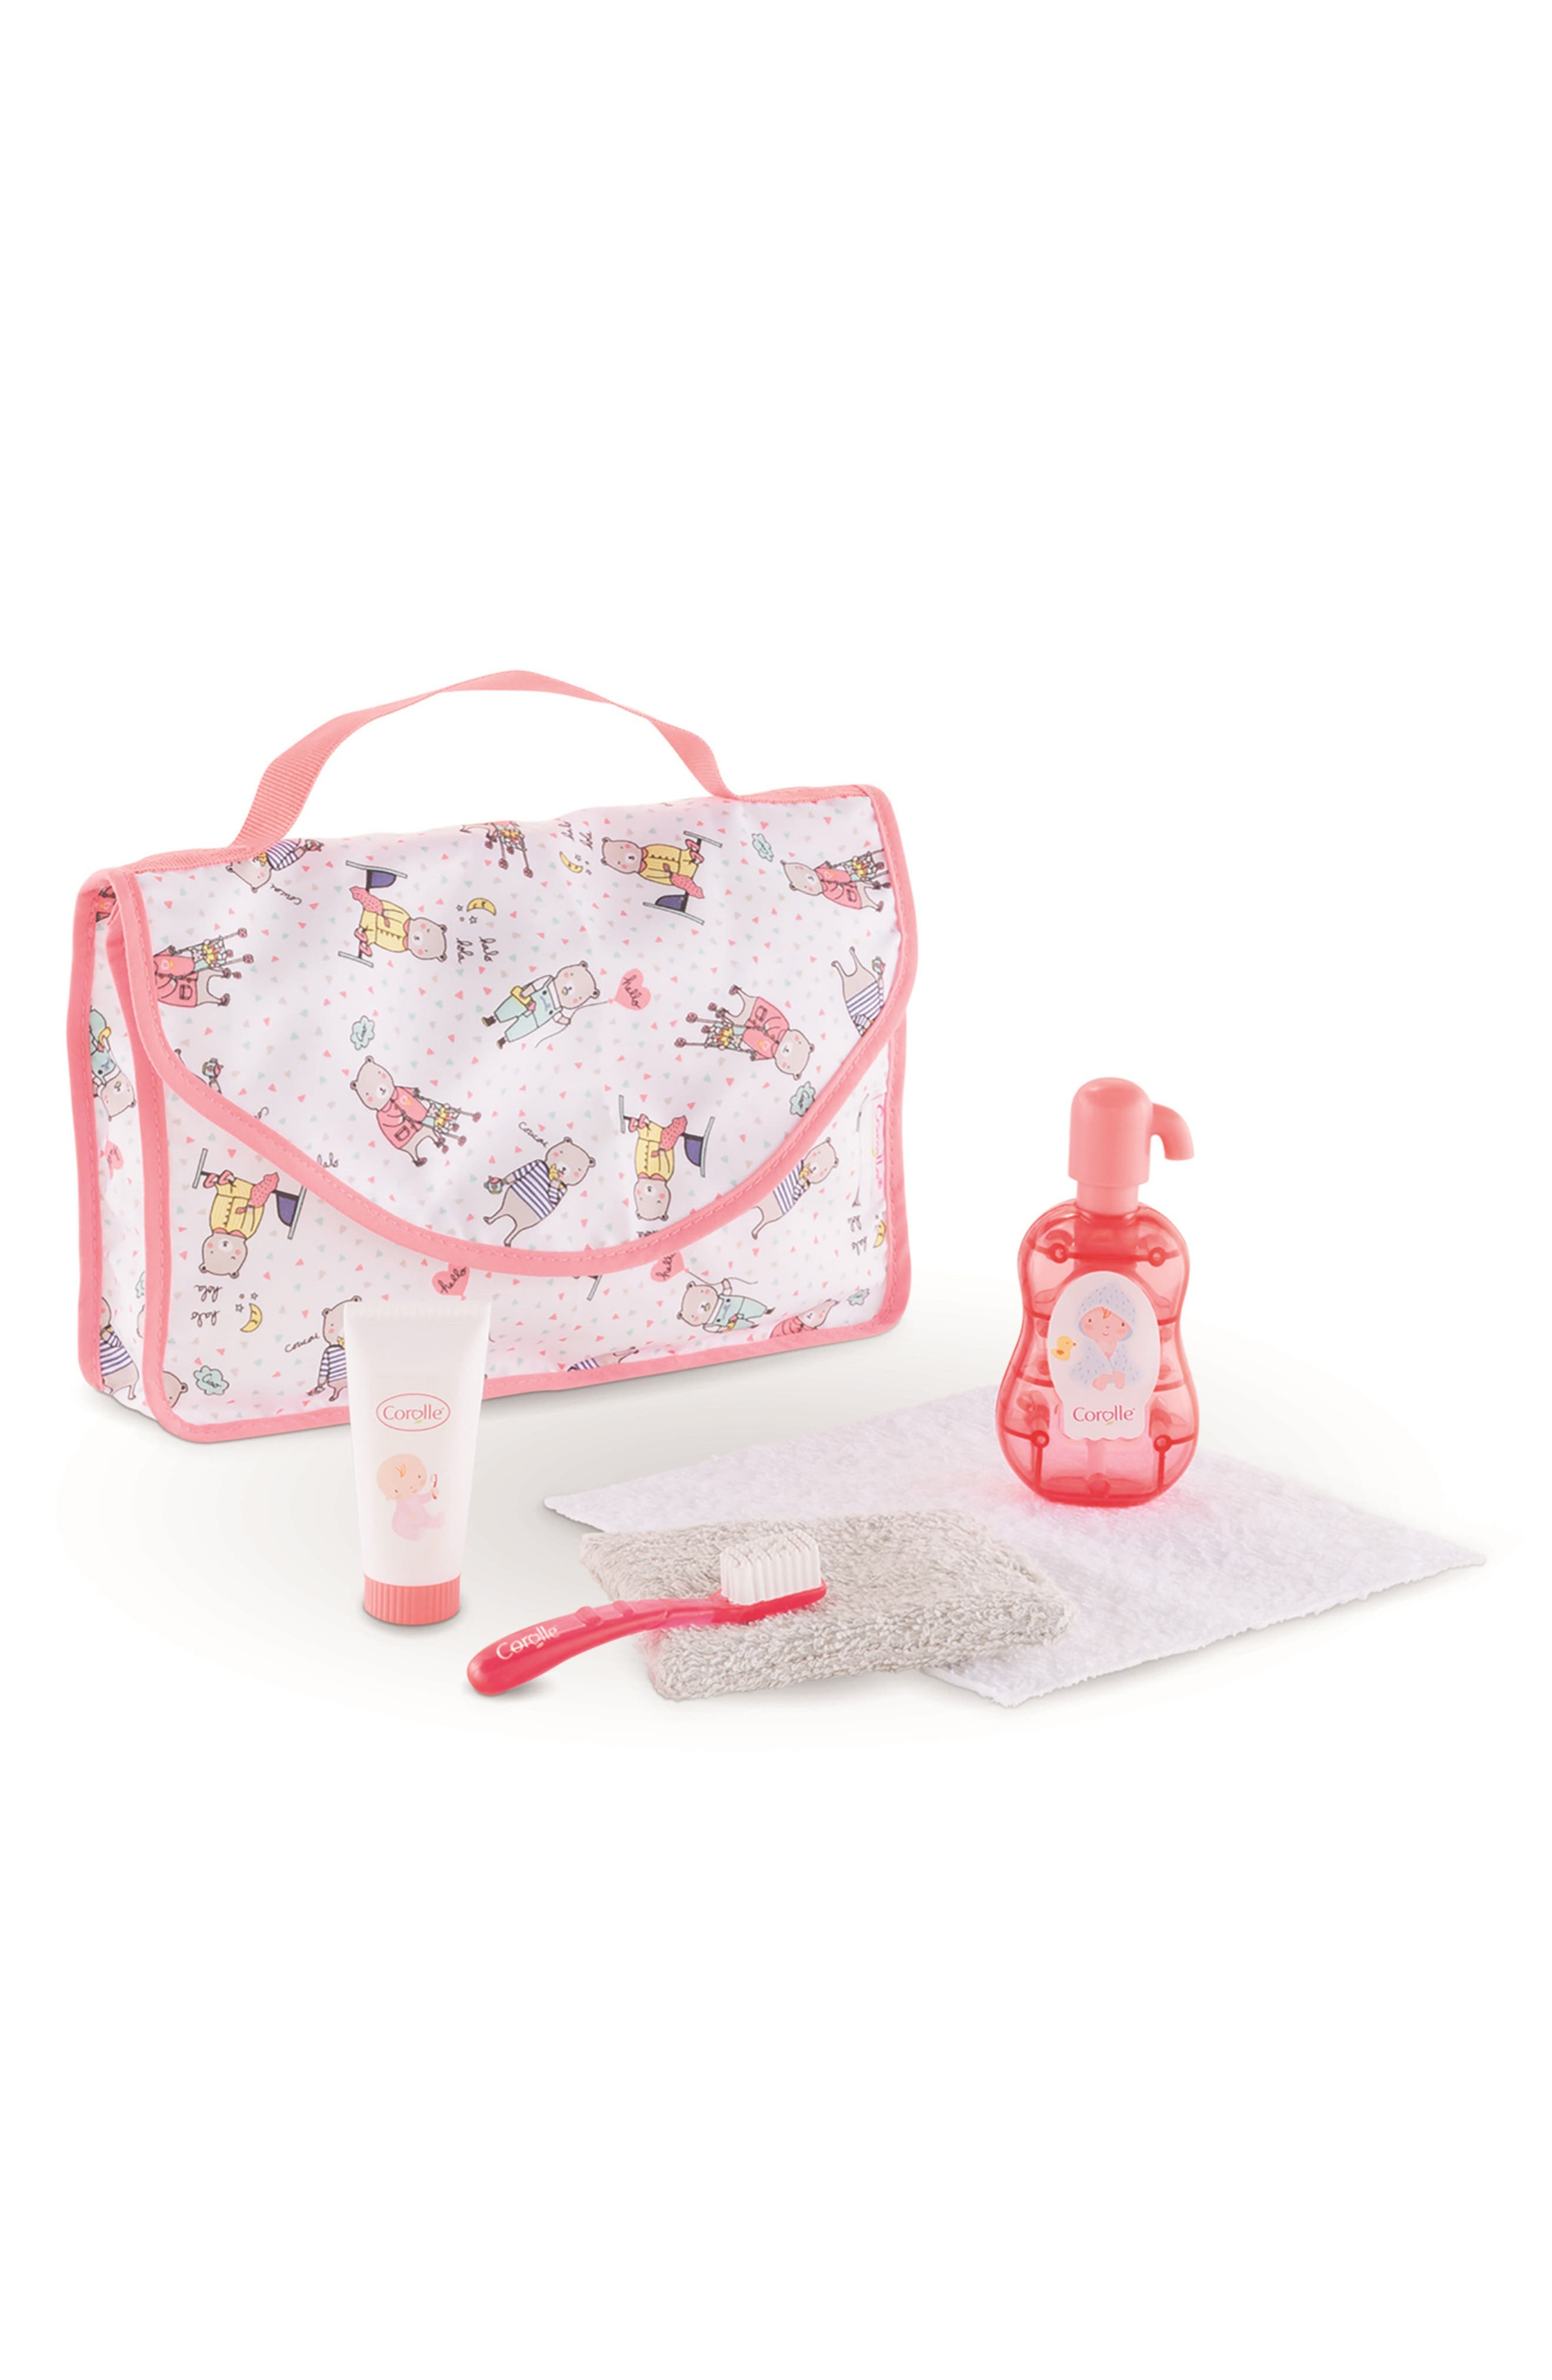 Toddler Girls Corolle Baby Doll Care Set